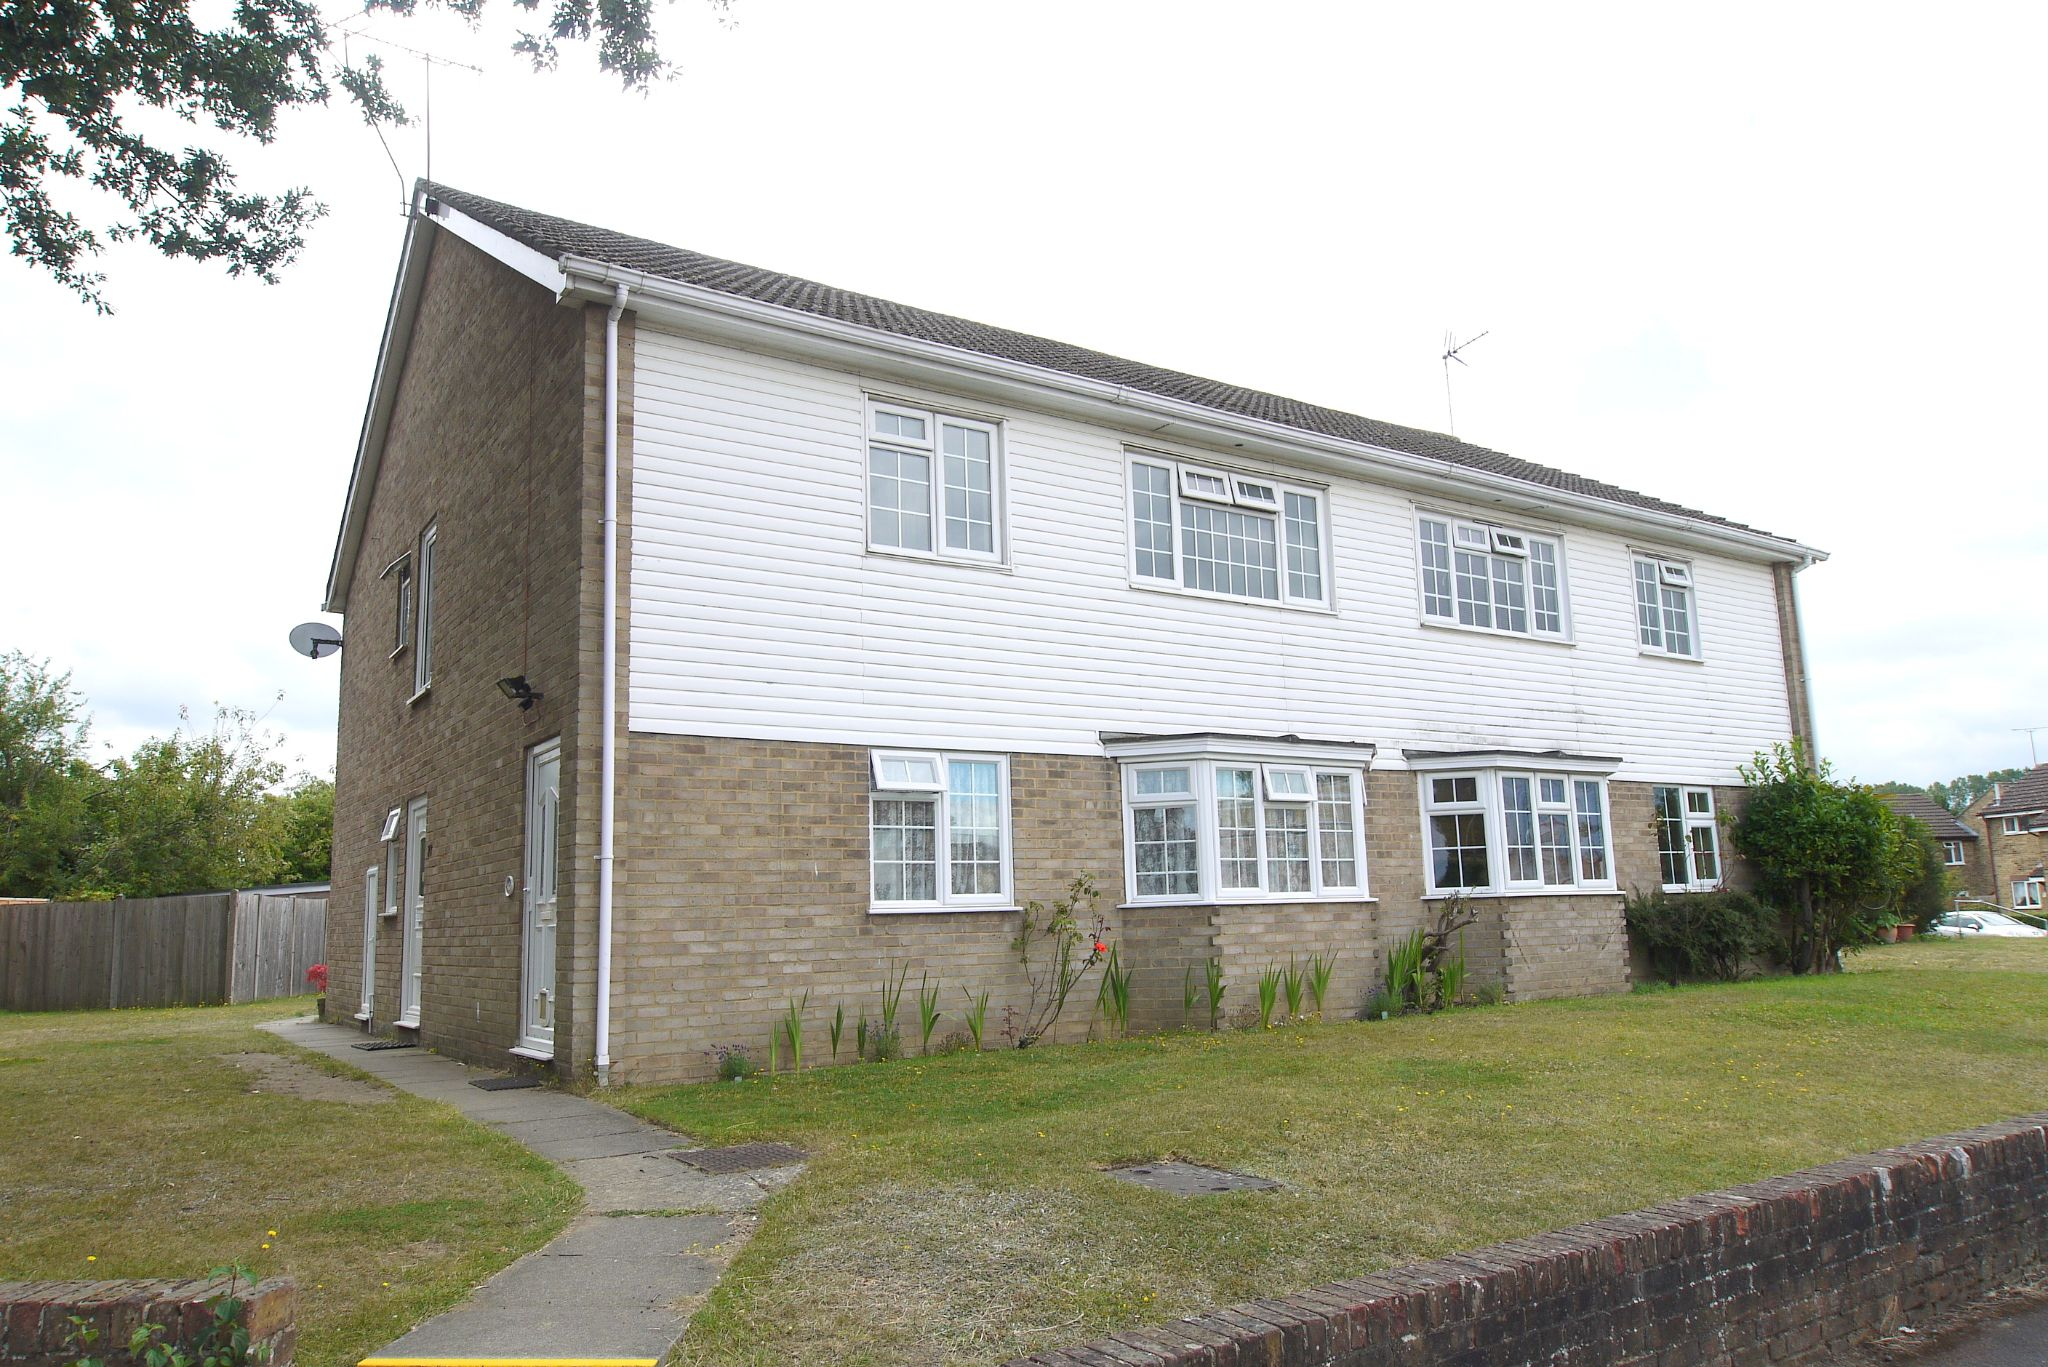 2 bedroom maisonette flat/apartment Sold in Sevenoaks - Photograph 1